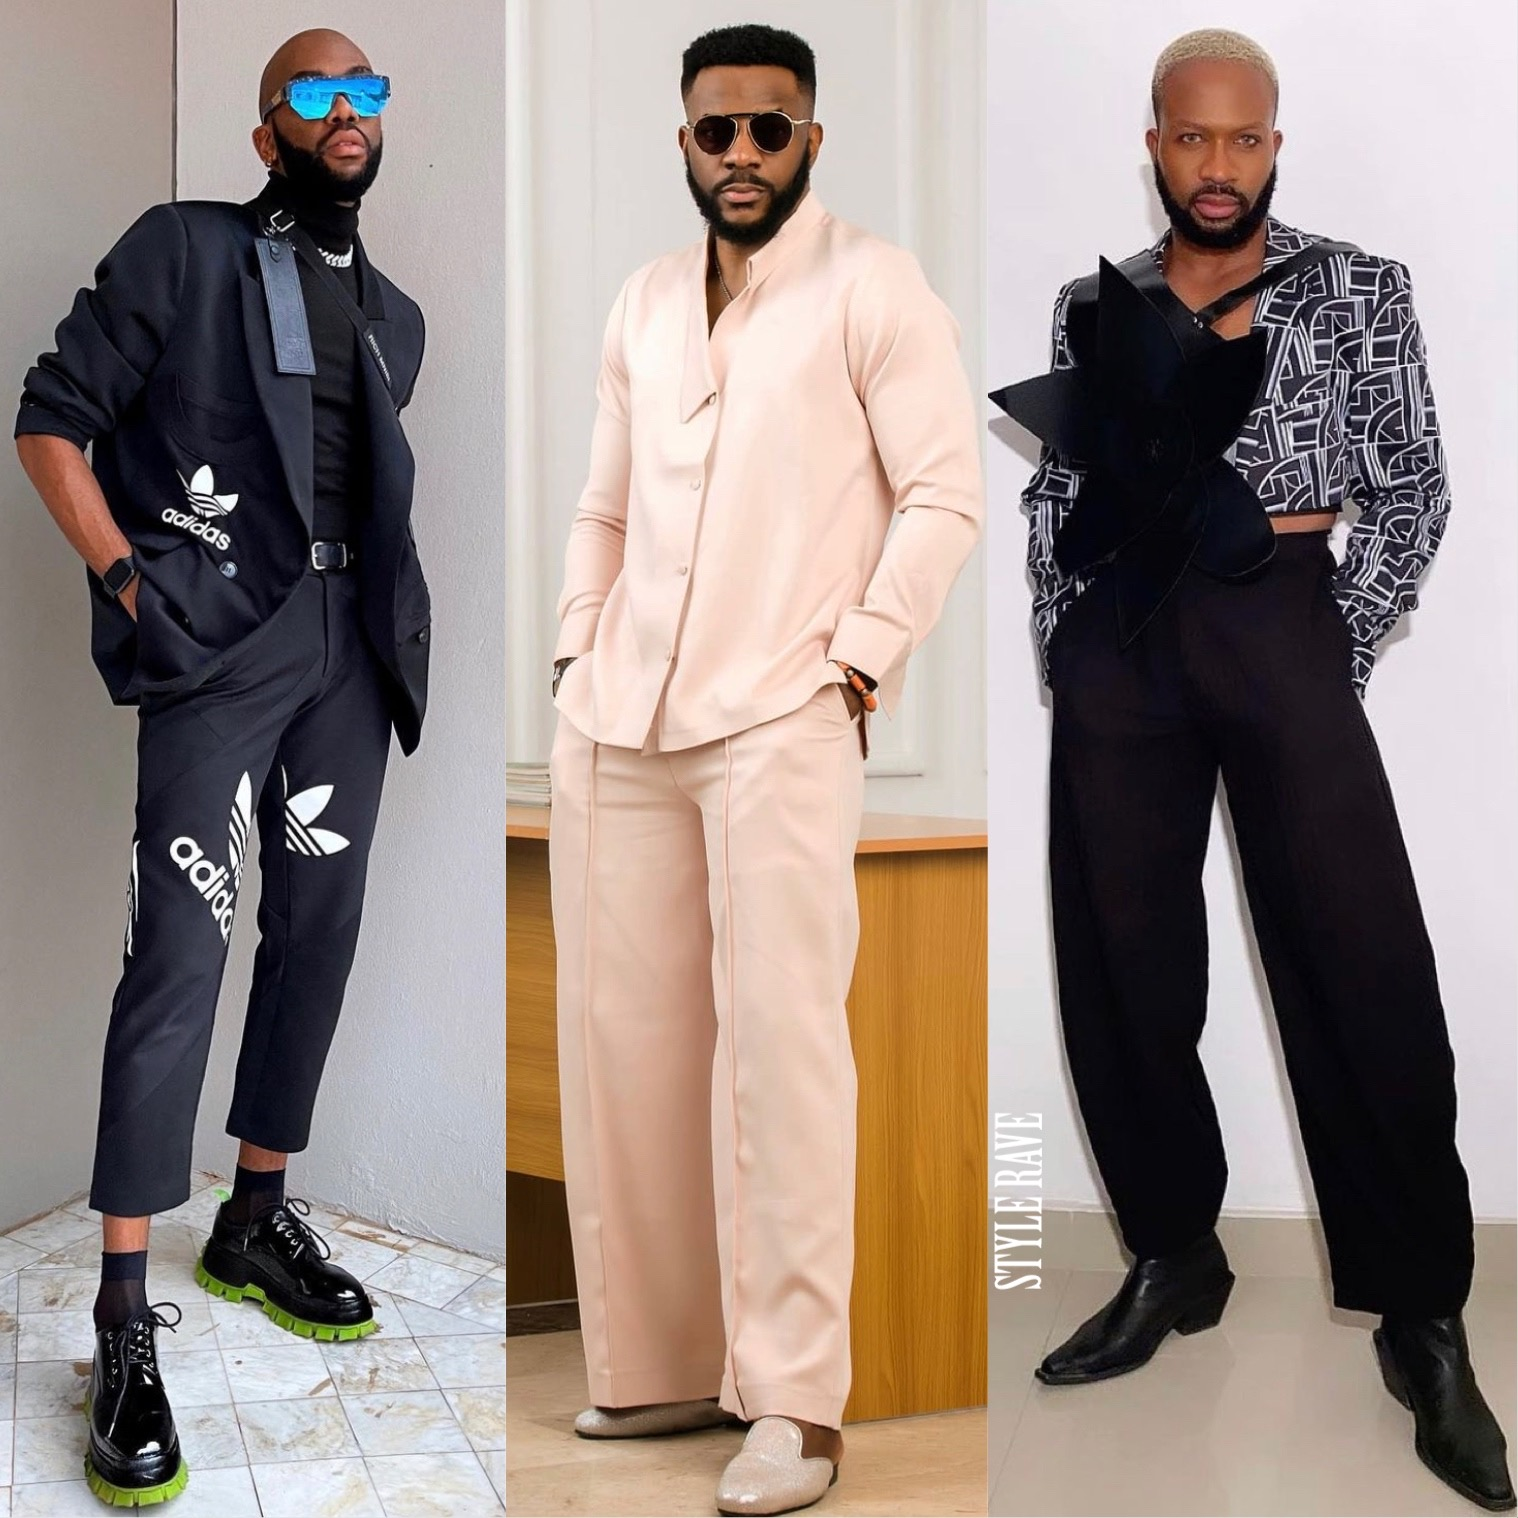 male-celebrities-africa-2021-fashion-ultra-hip-style-rave